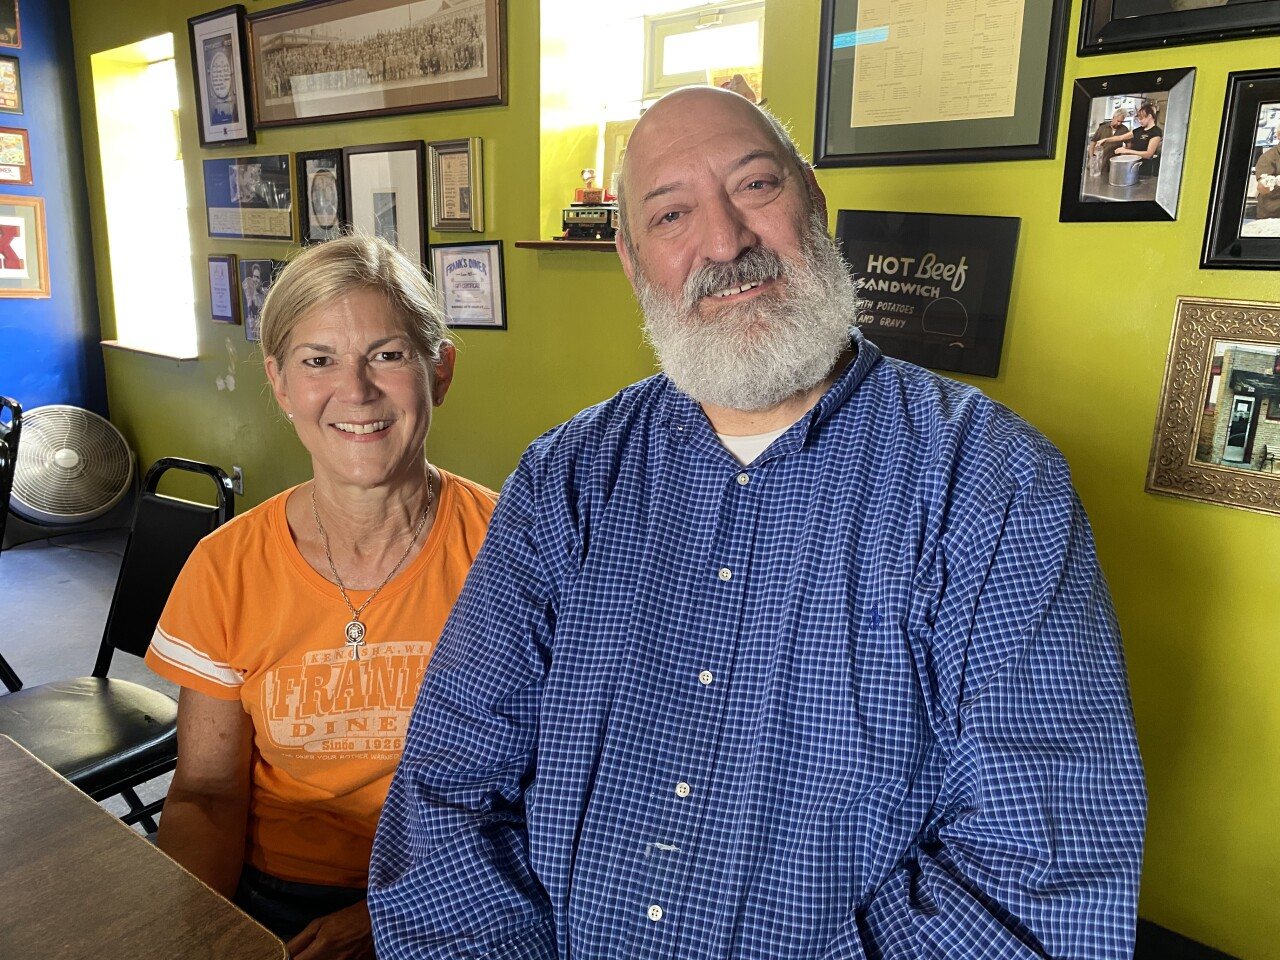 Kevin Ervin and his wife Julie Rittmille sitting in Franks Diner